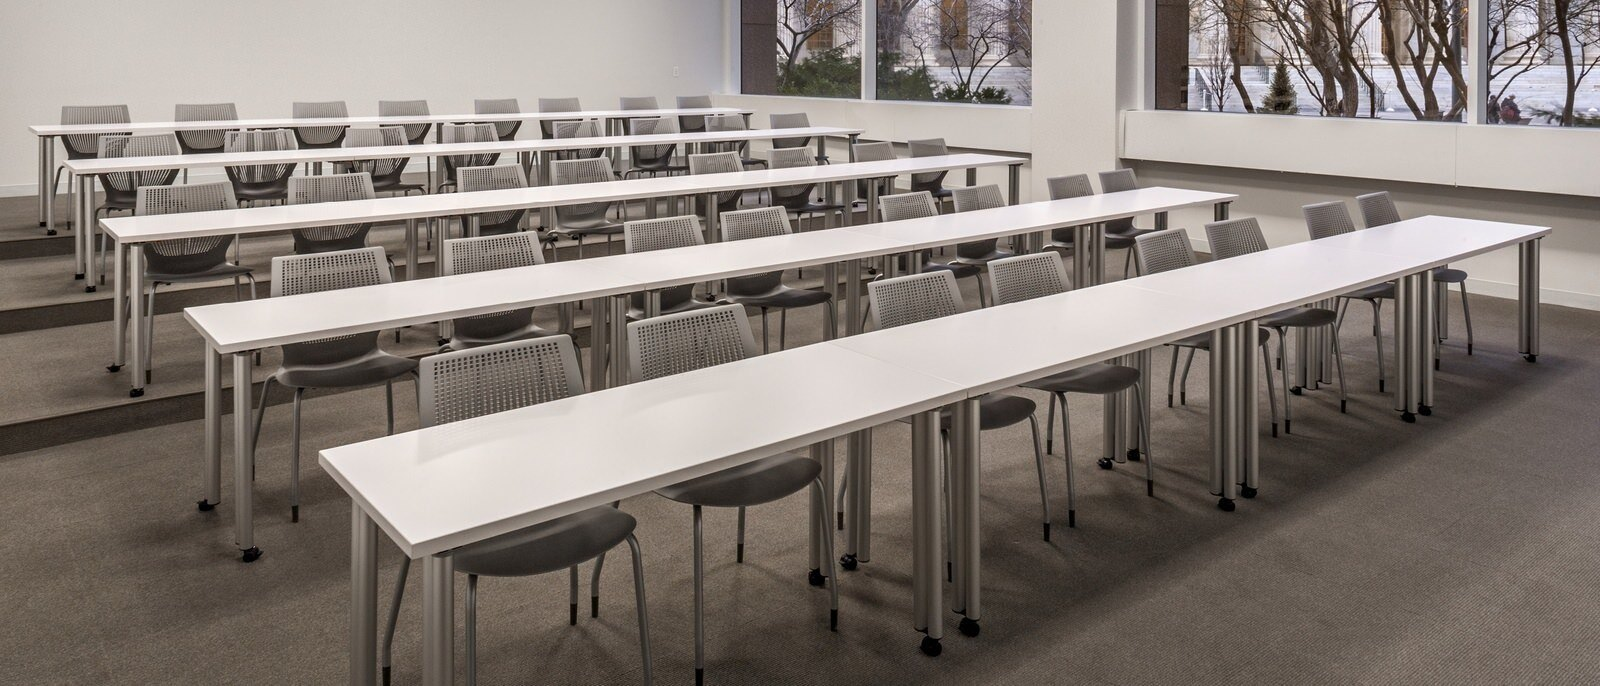 A classroom with five long white tables and multiple chairs.